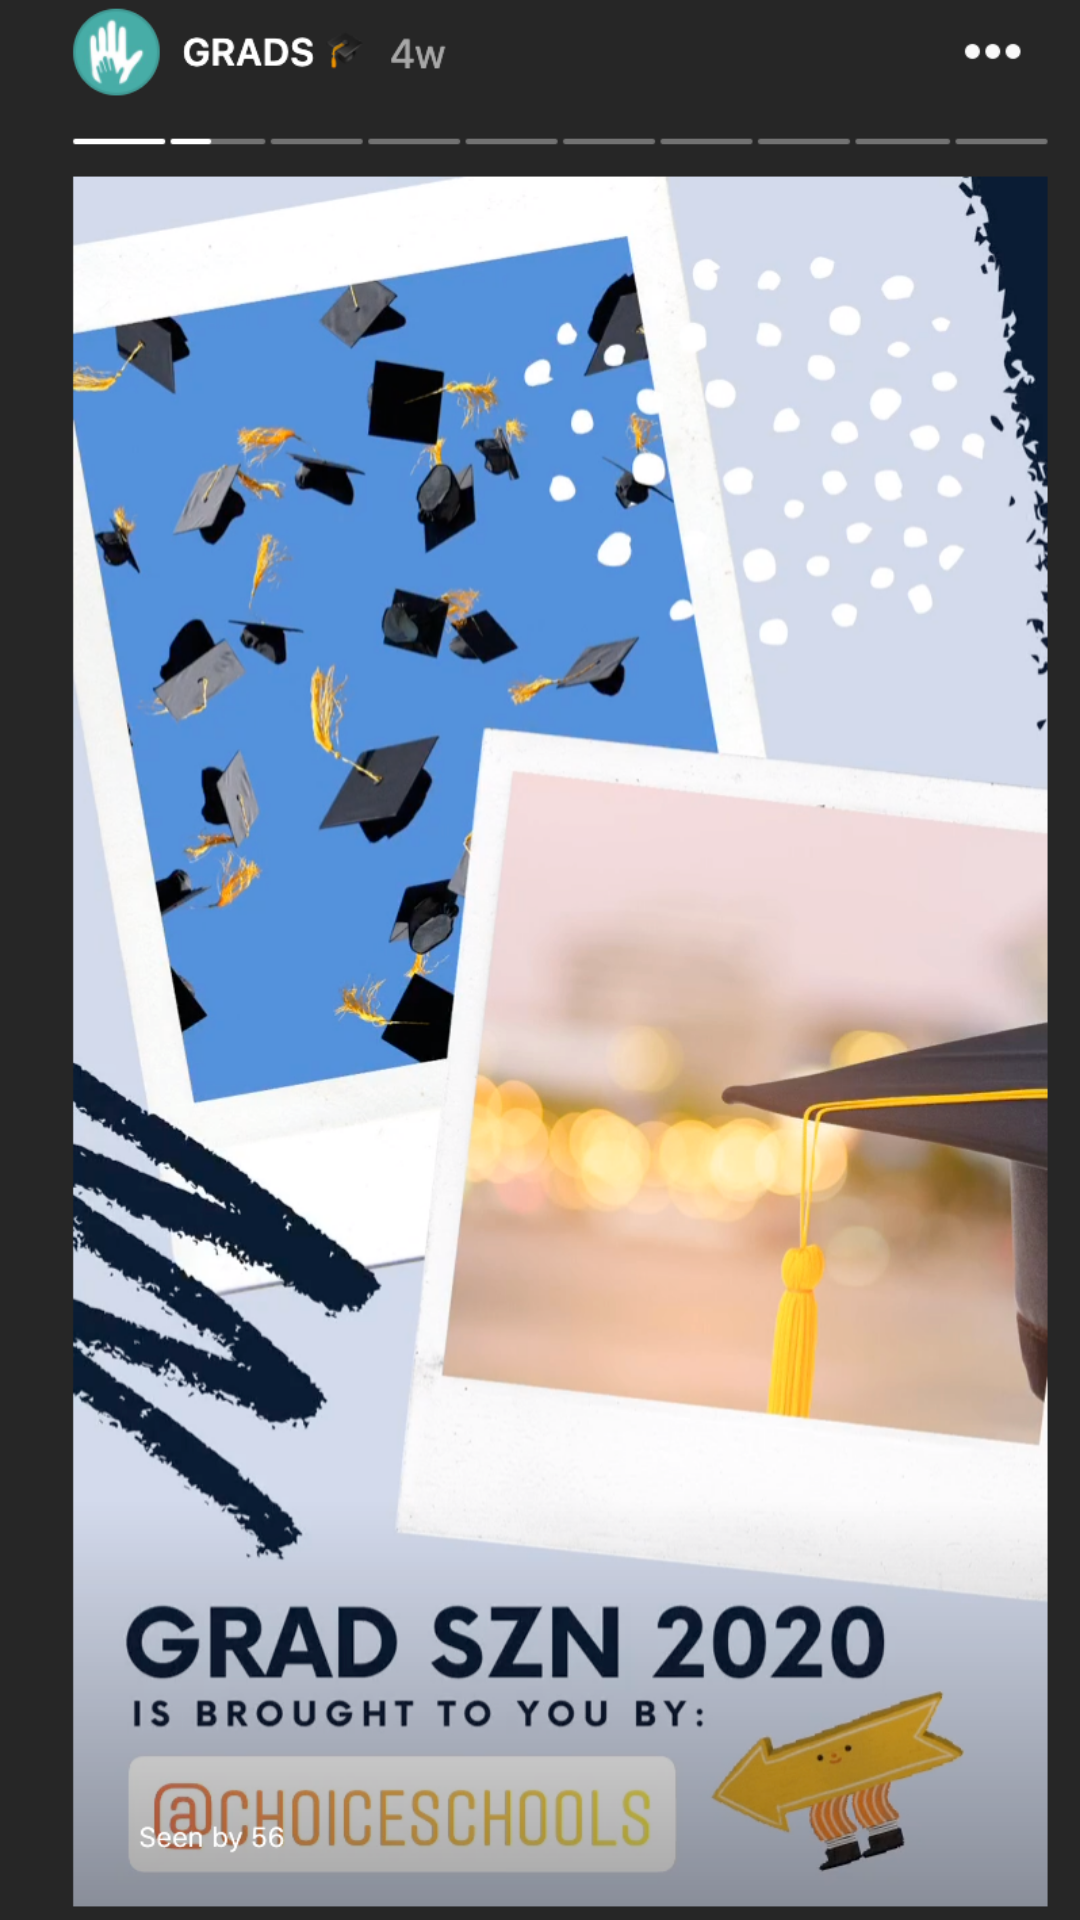 Our 2020 #MiCharterGrad Instagram highlight was Choice Schools. You can see in the bottom left corner that we thank them for their support and link to their Instagram account.